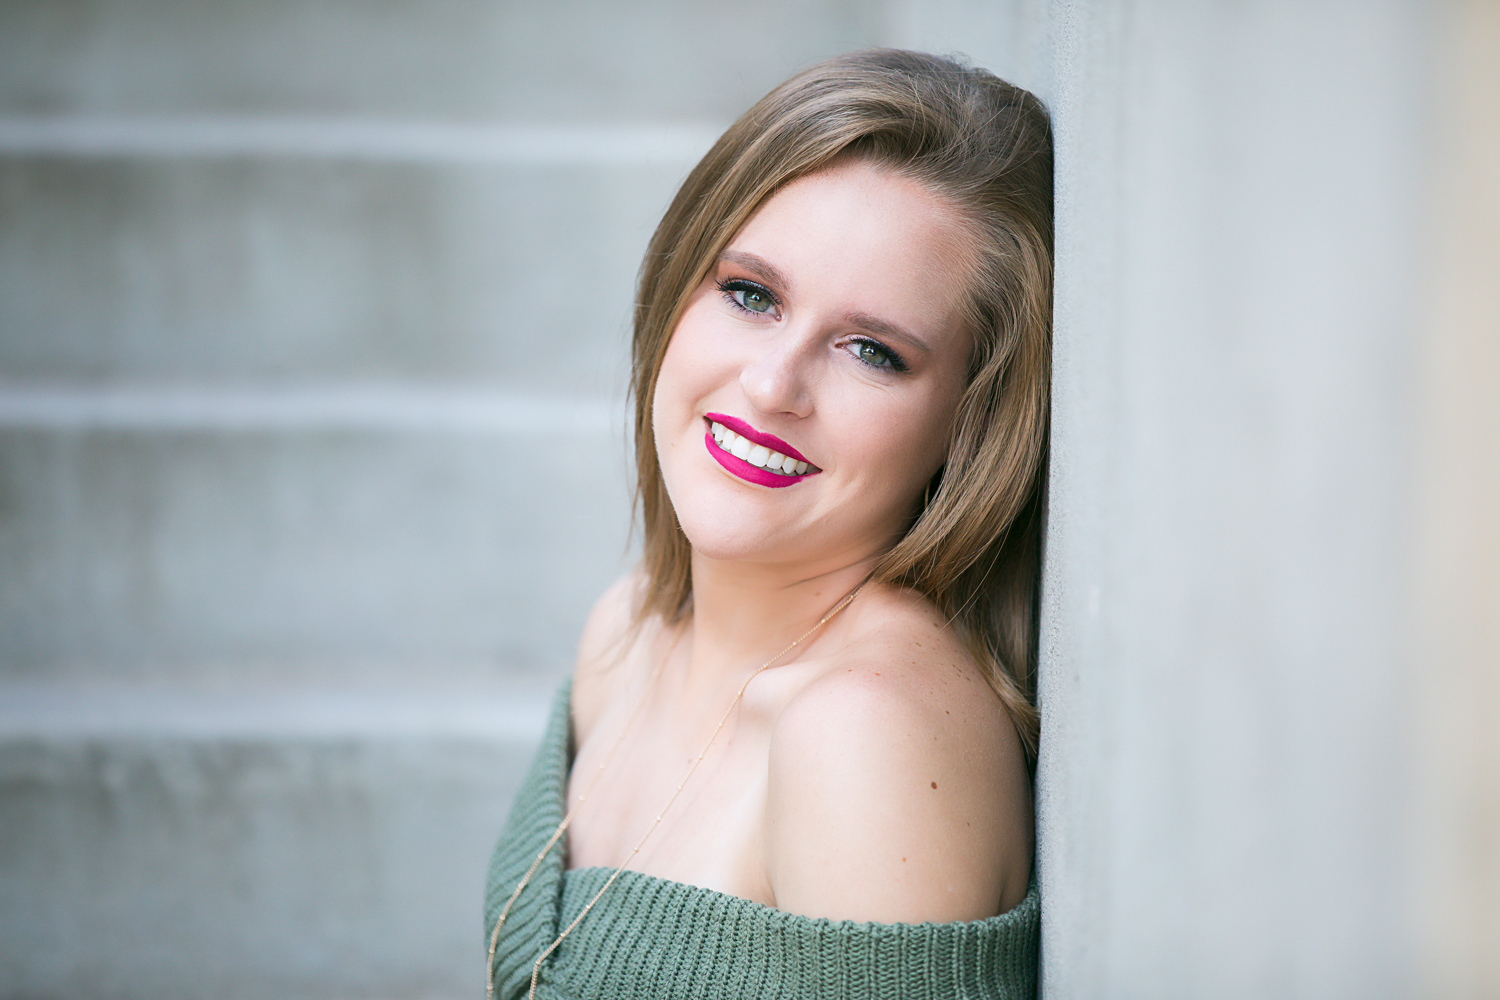 Senior girl wearing green sweater, leaning against concrete wall in downtown Oklahoma City by Amanda Lynn.